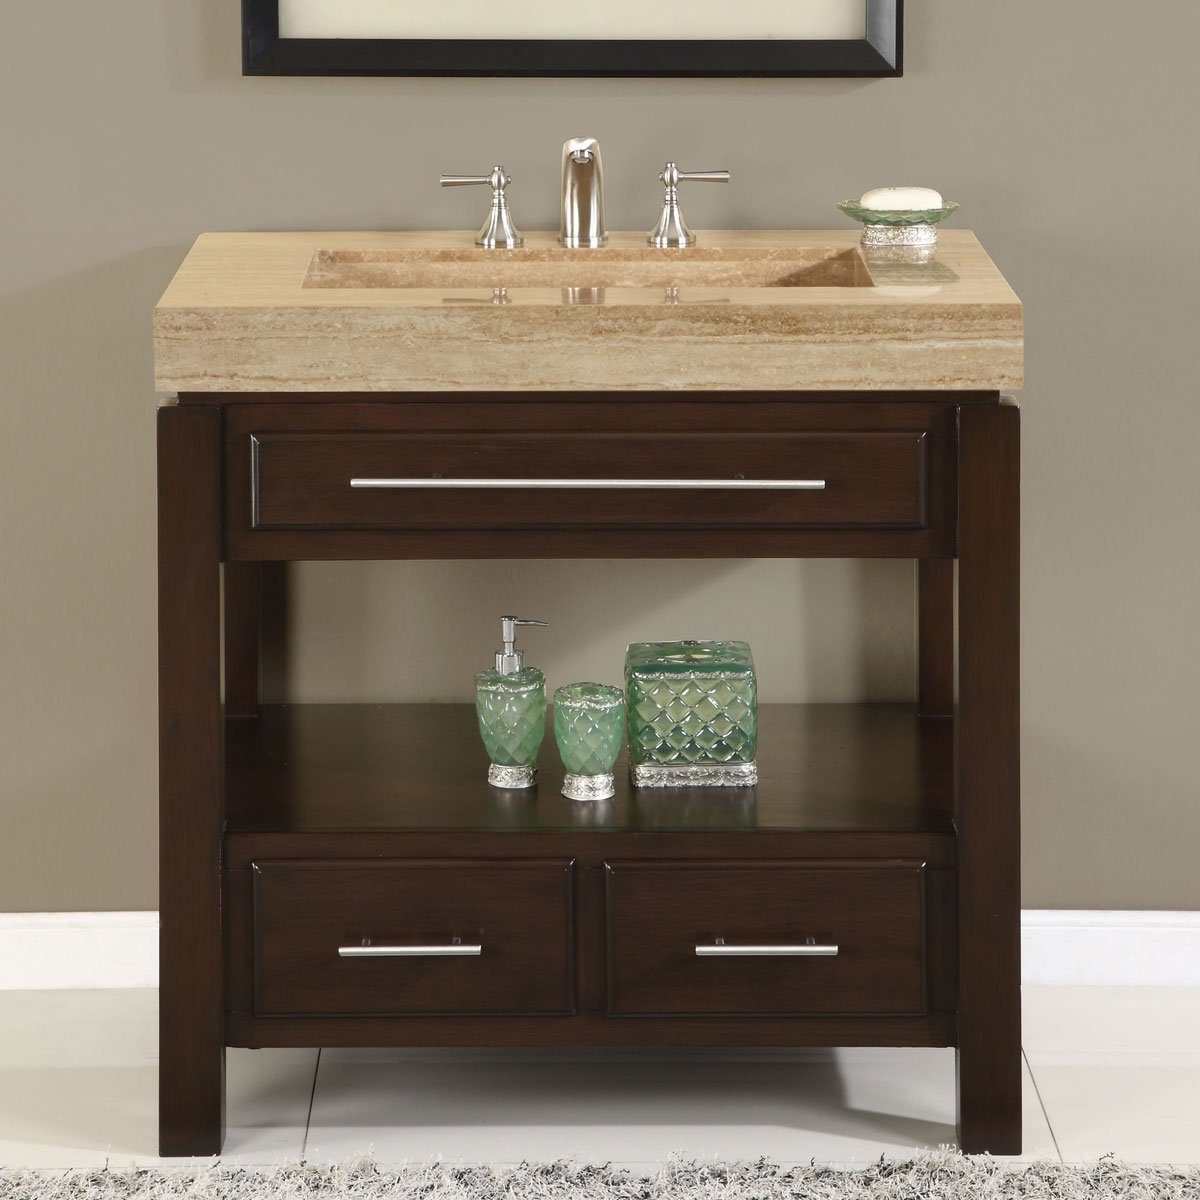 wooden bathroom sink cabinets. Amazon Com  Silkroad Exclusive Dark Walnut Stone Top Single Sink Bathroom Vanity With Cabinet 36 Inch Home Kitchen